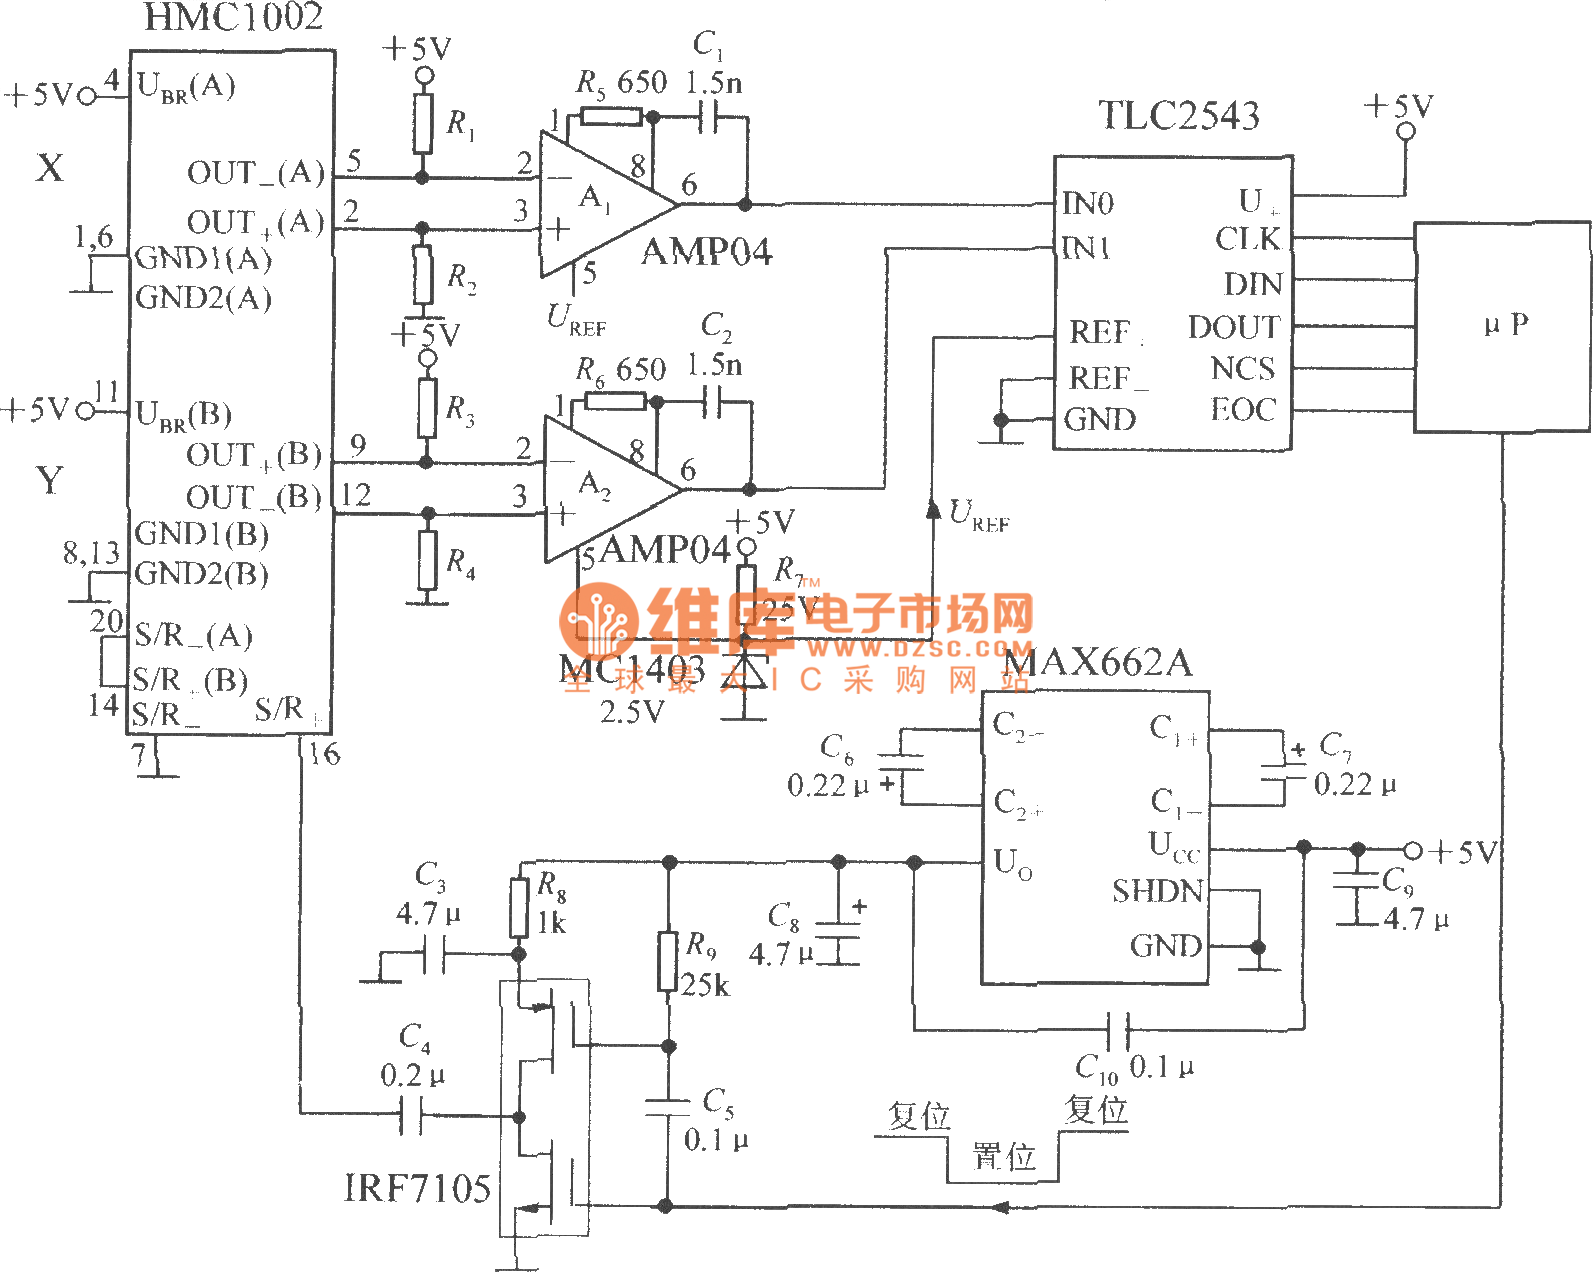 Magnetic Field Sensor Ic Circuit Page 13 Sensors Detectors Circuits Nextgr Electromagnetic Electronic Deborahs Journal 0314 The Application Of Dualaxis